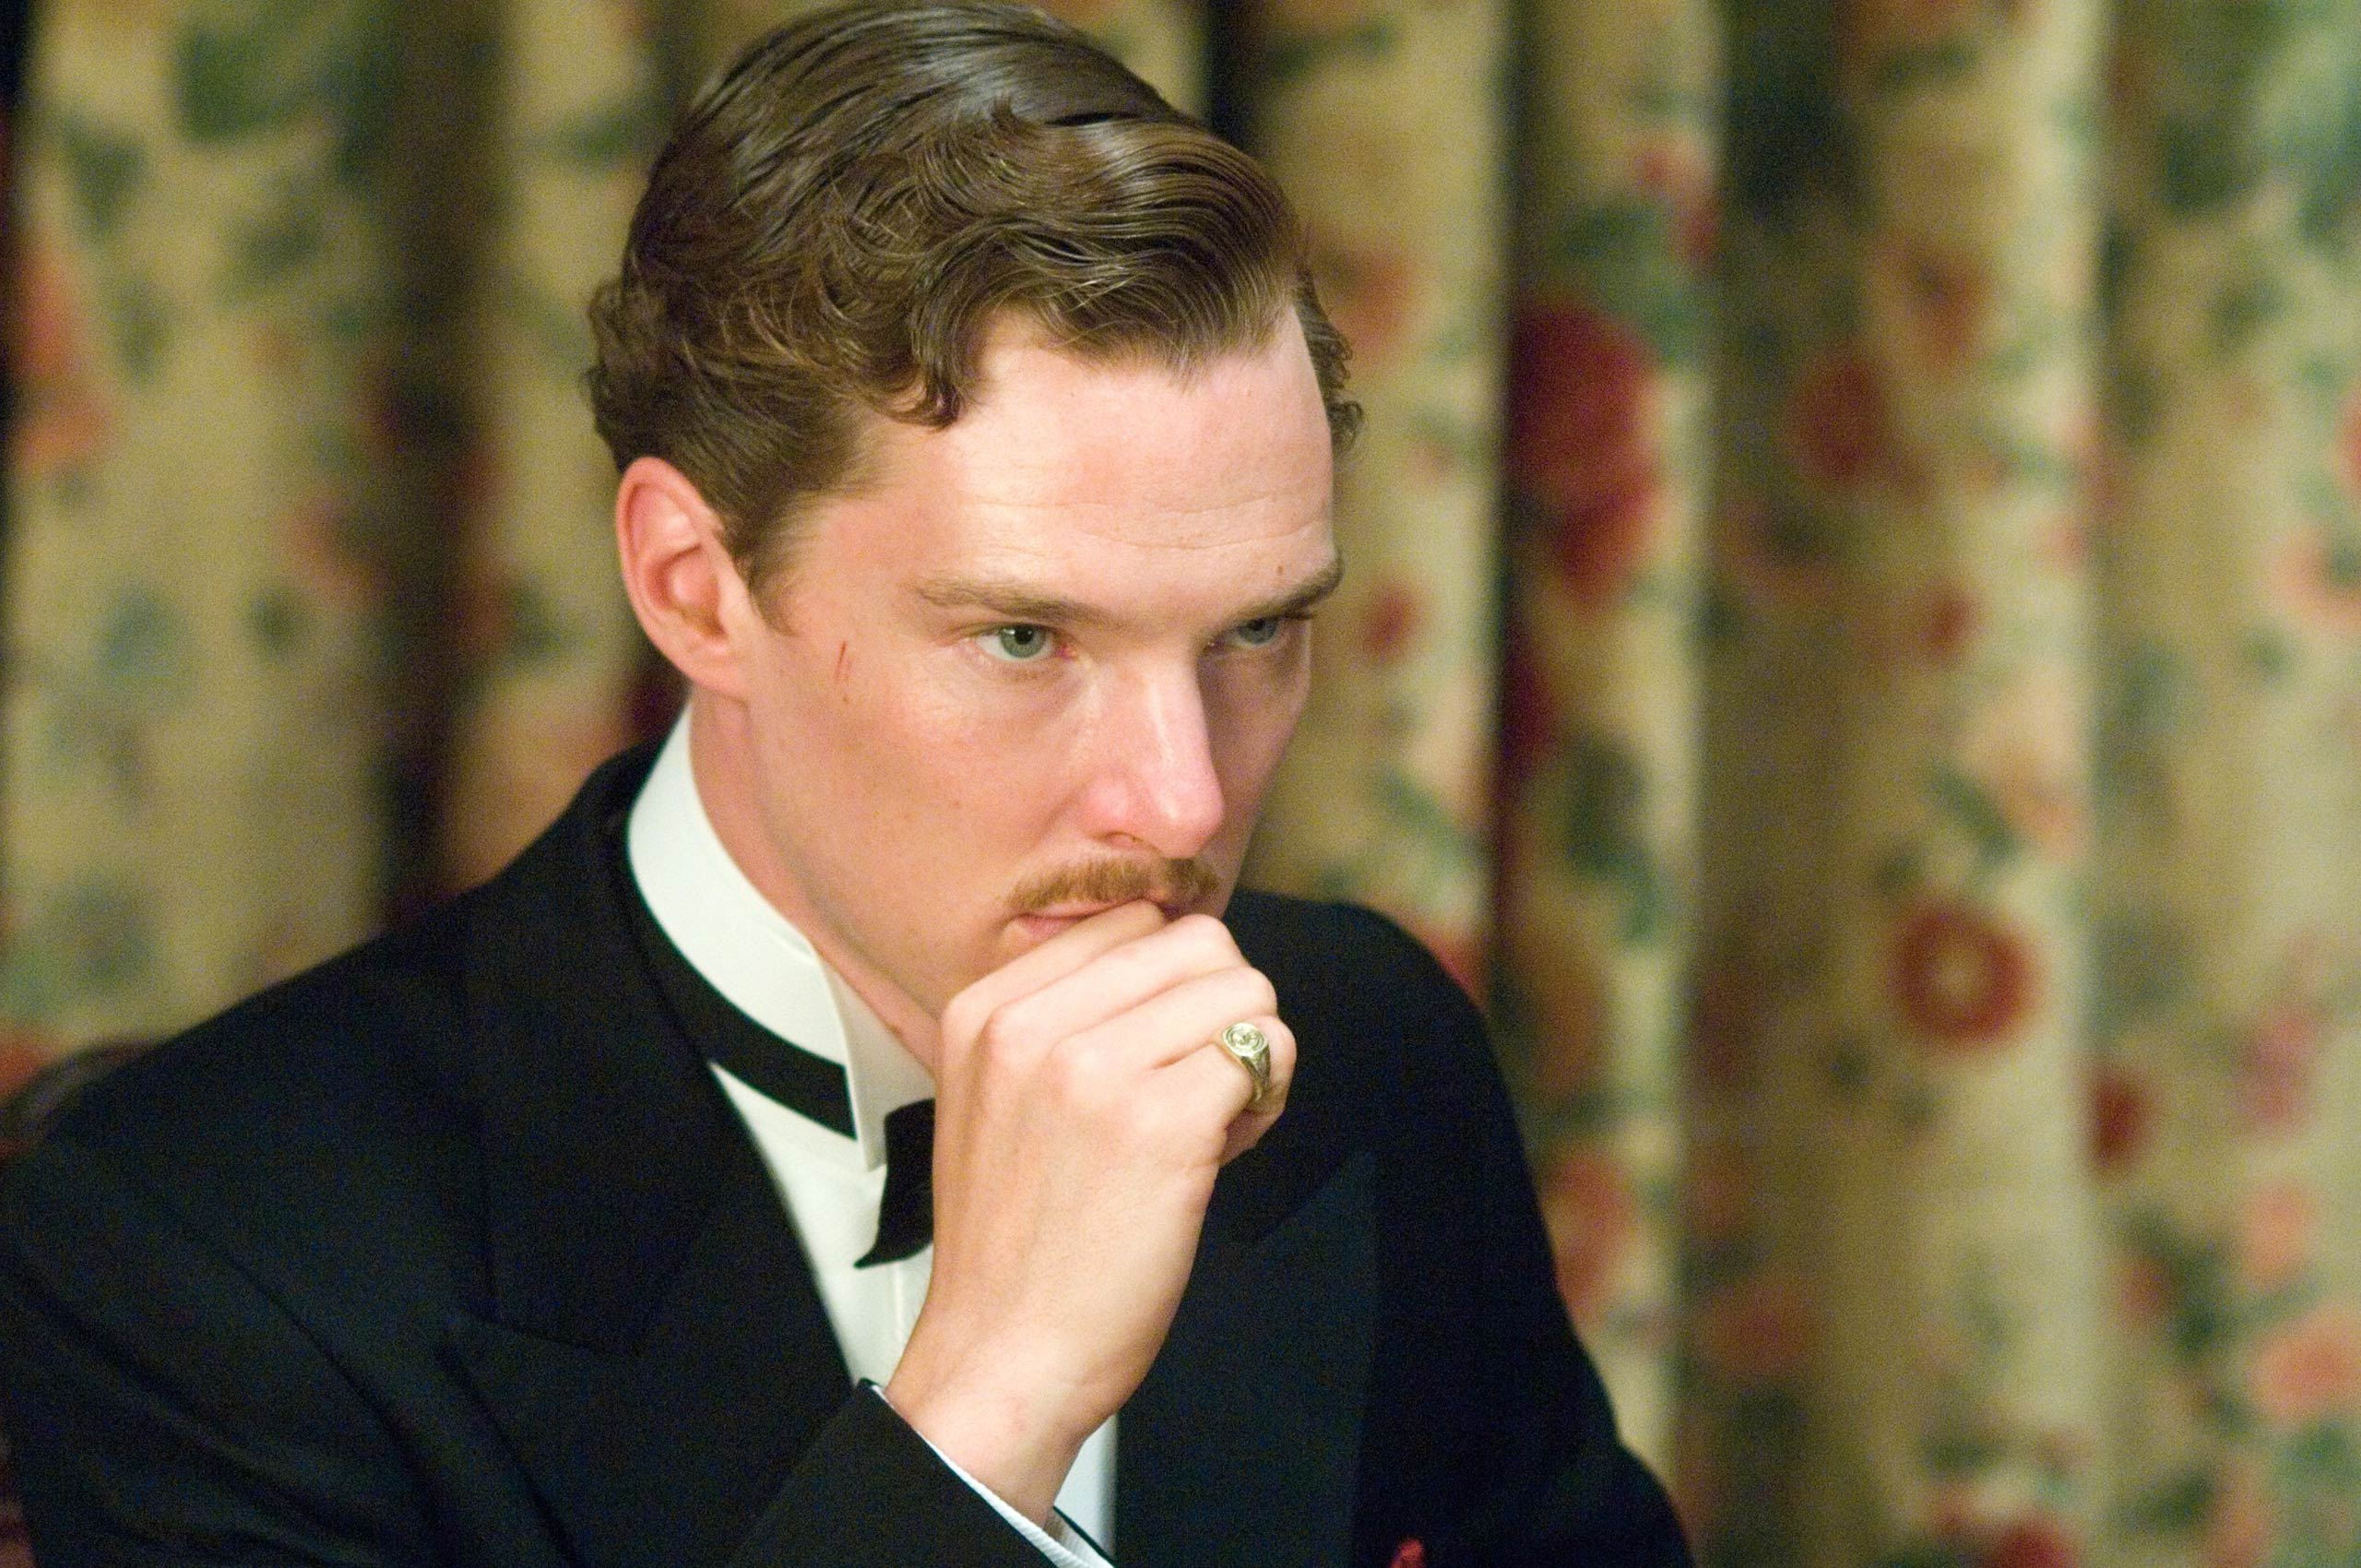 <strong>Atonement</strong> Marking one of his creepier roles, Cumberbatch played a rapist named Paul Marshall in this 2007 British drama that starred James McAvoy and Keira Knightley.